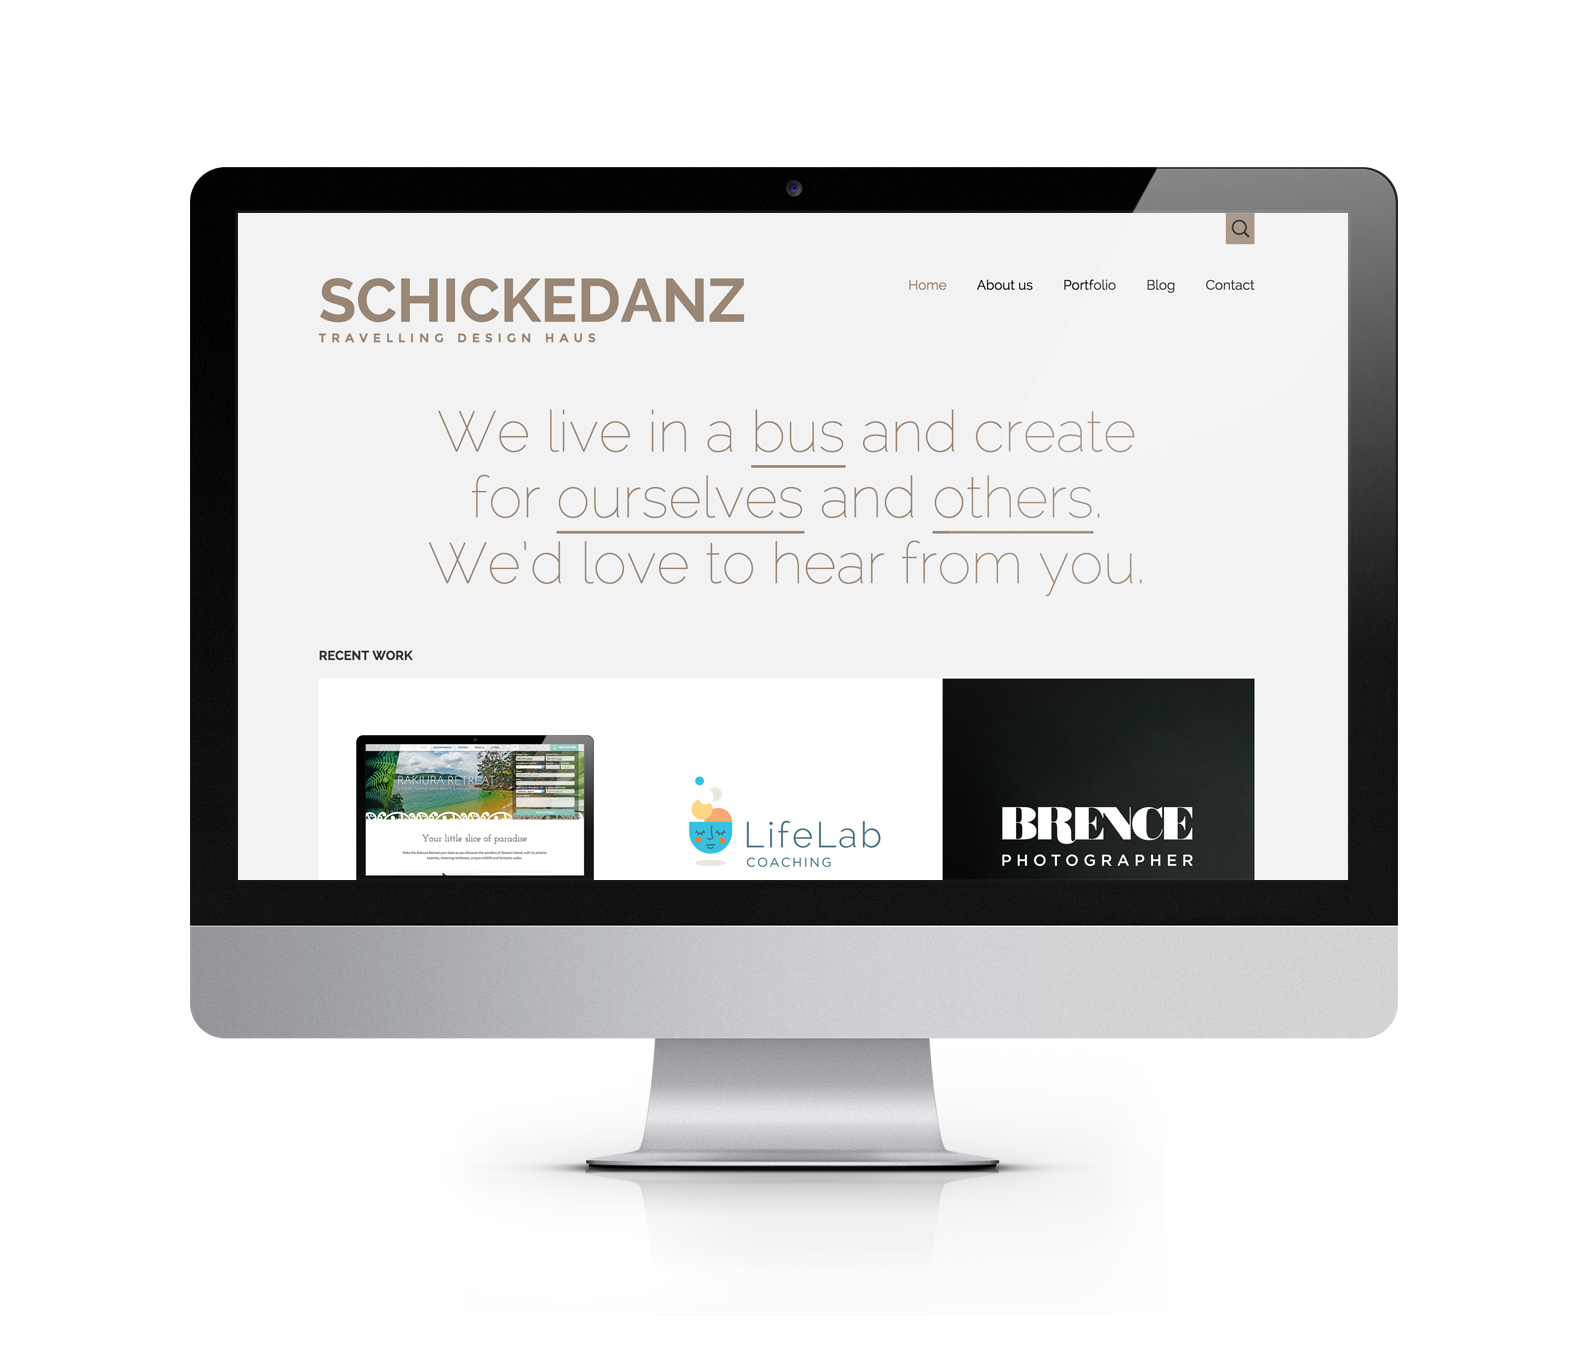 The new Schickedanz Design site.